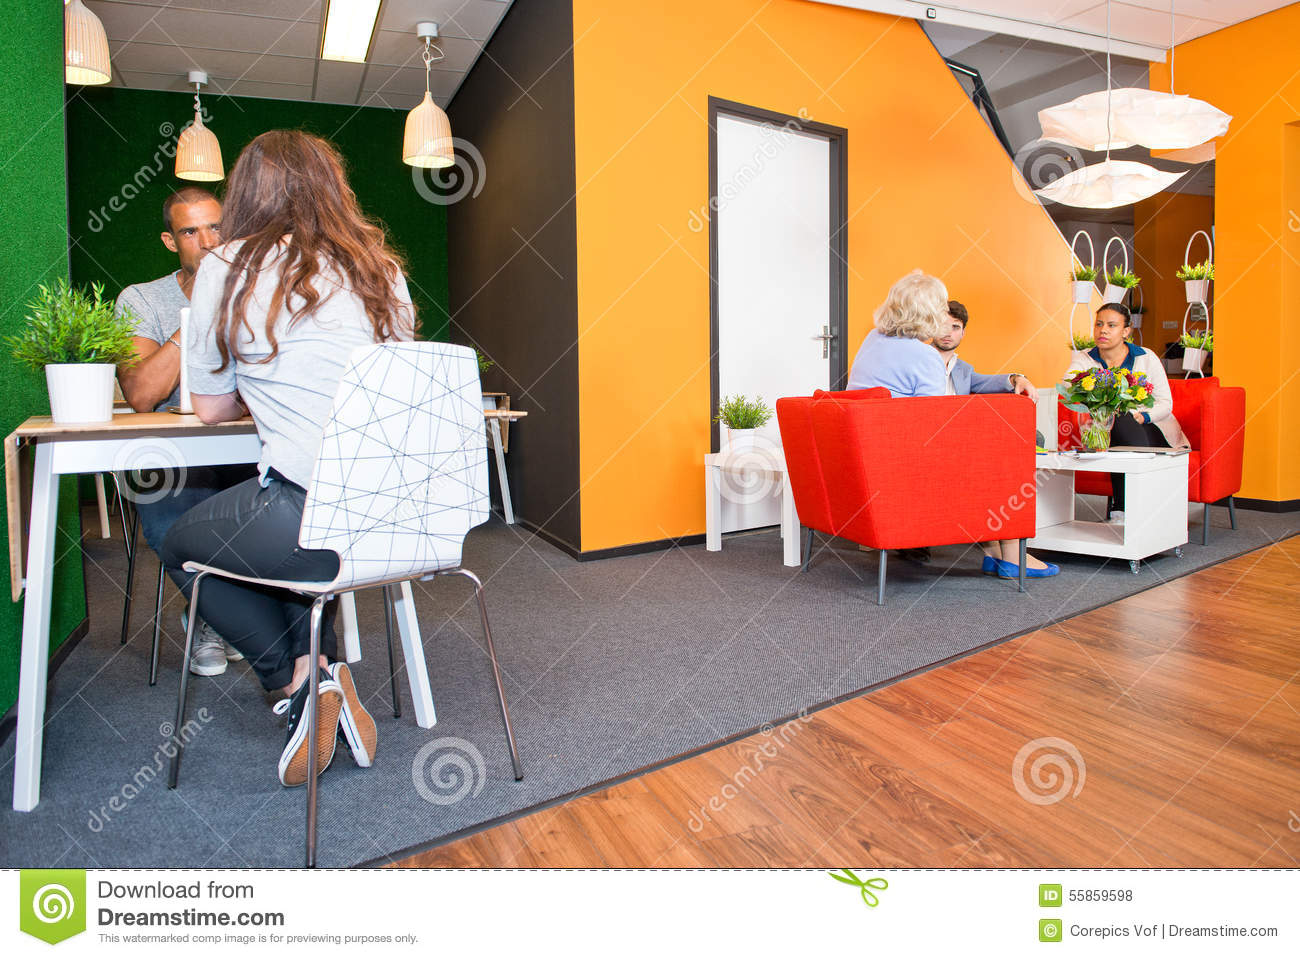 Office Waiting Room With Two Comfortable Dark Leather Armchairs Near A Round Coffee Table